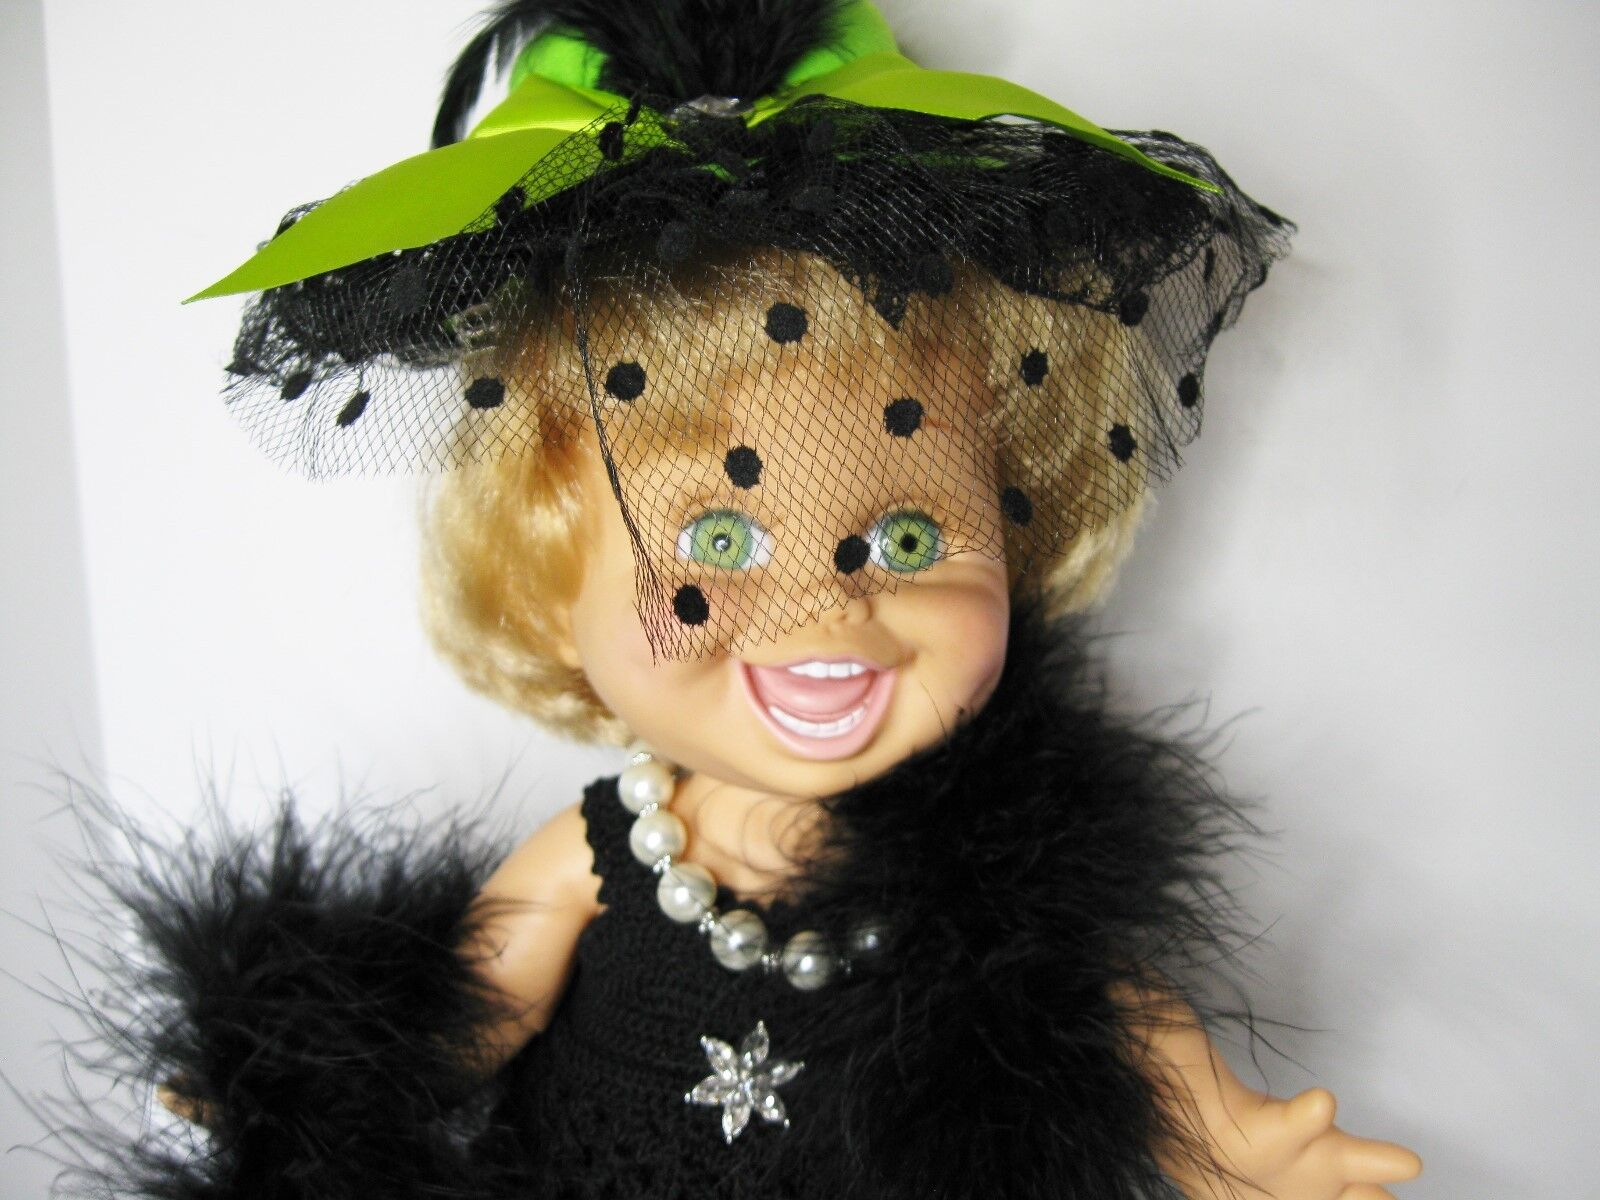 GALOOB BABY FACE DOLLCLOTHES HANDMADE CROCHET BLACK DRESS AND HAT